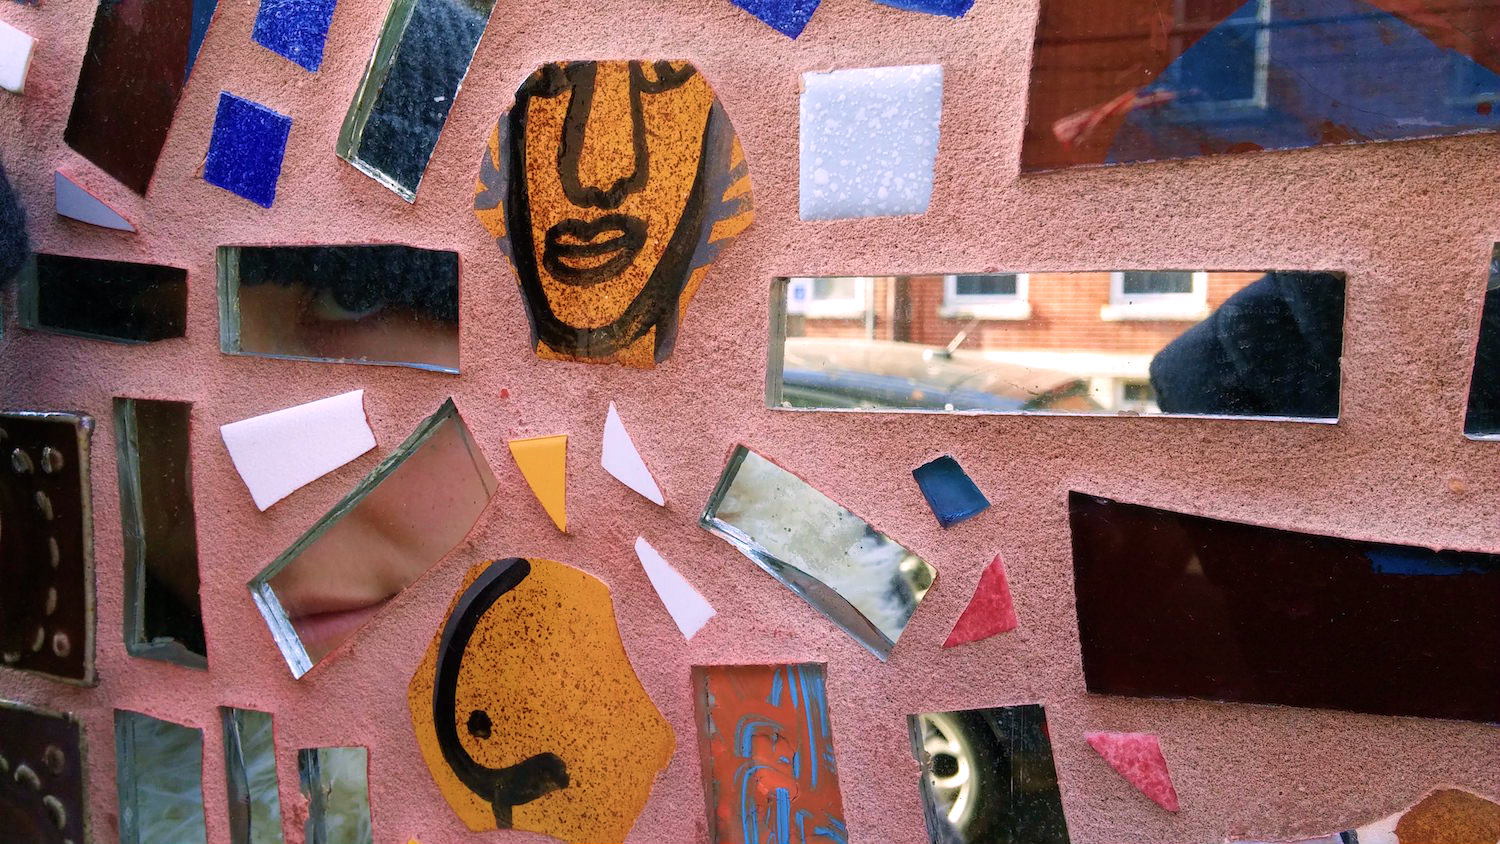 Philadelphia's Magic Gardens  on South Street. A nonprofit community art project.